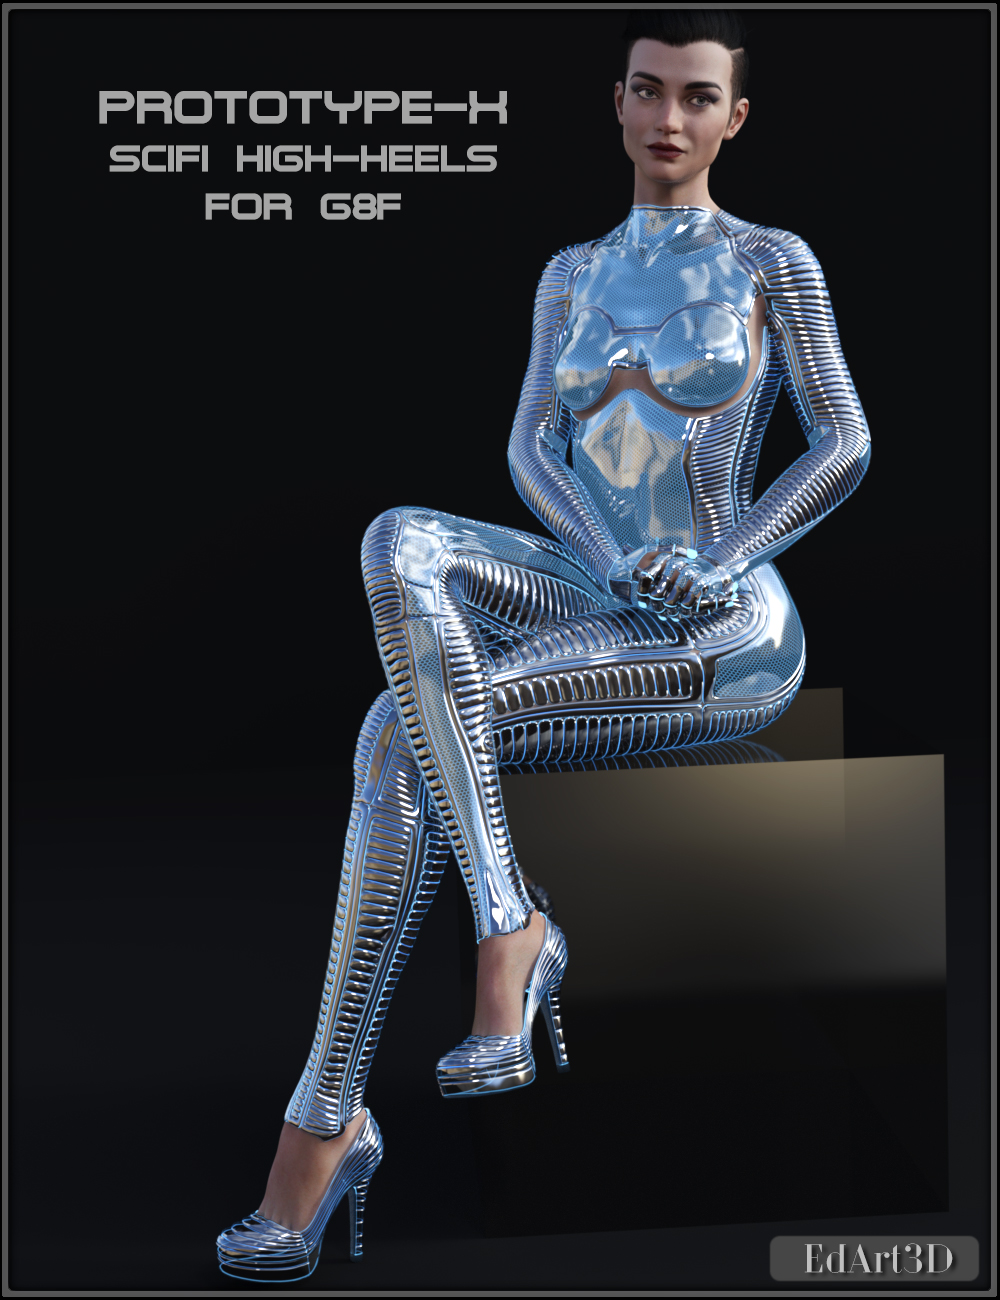 PROTOTYPE-X - SciFi High-Heels - for G8F  by EdArt3D